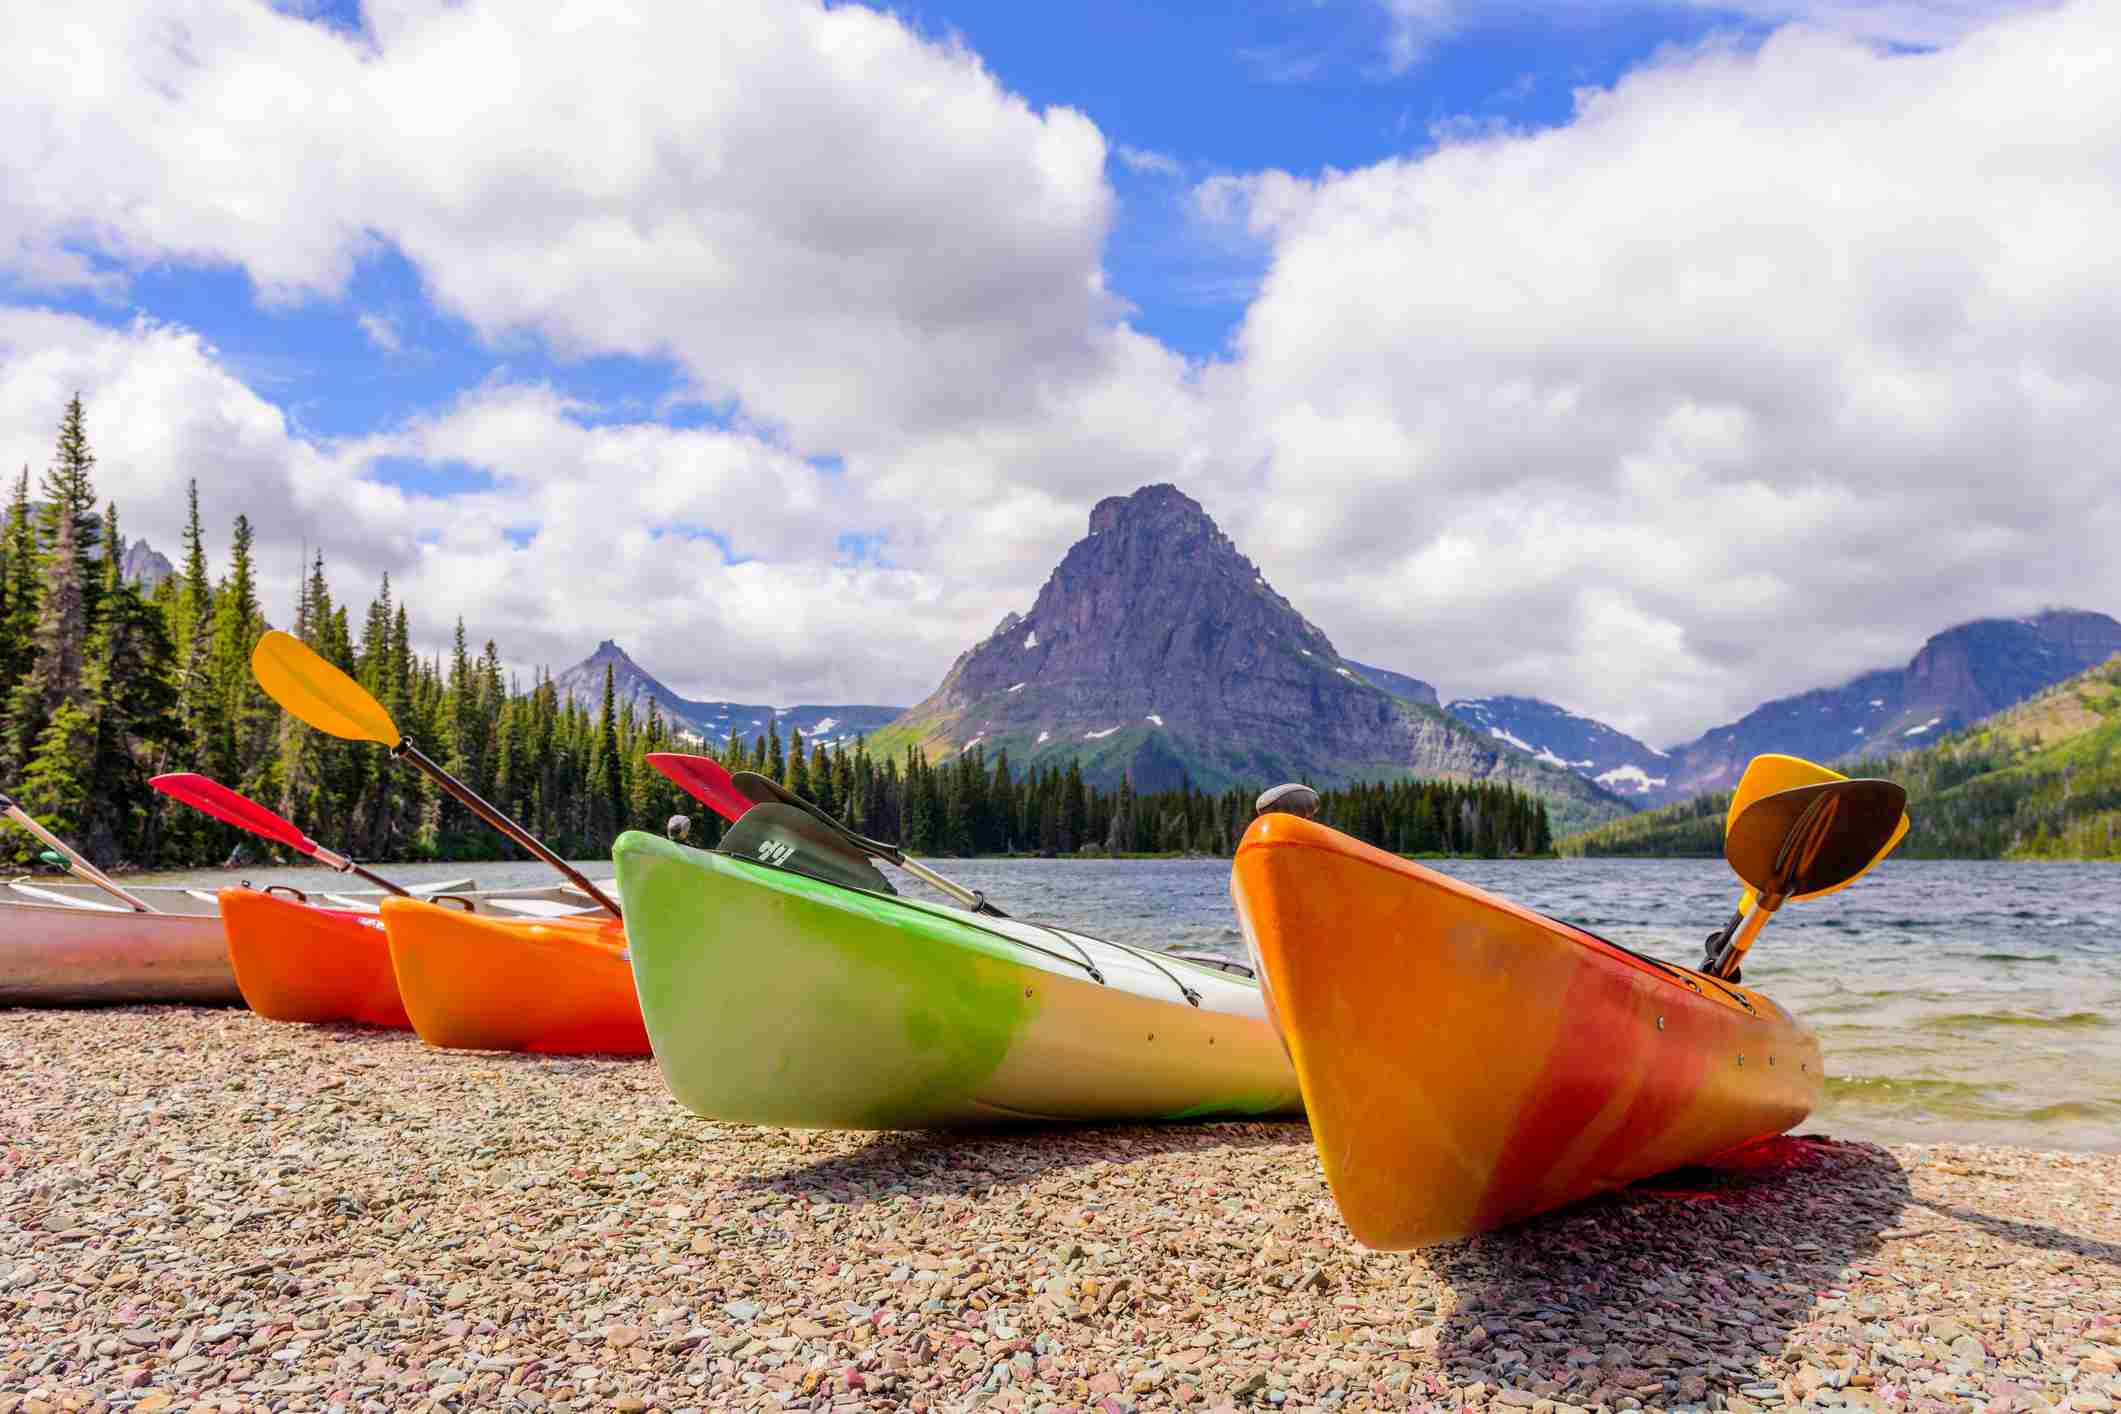 Kayaking is popular activity in the Two Medicine lakes